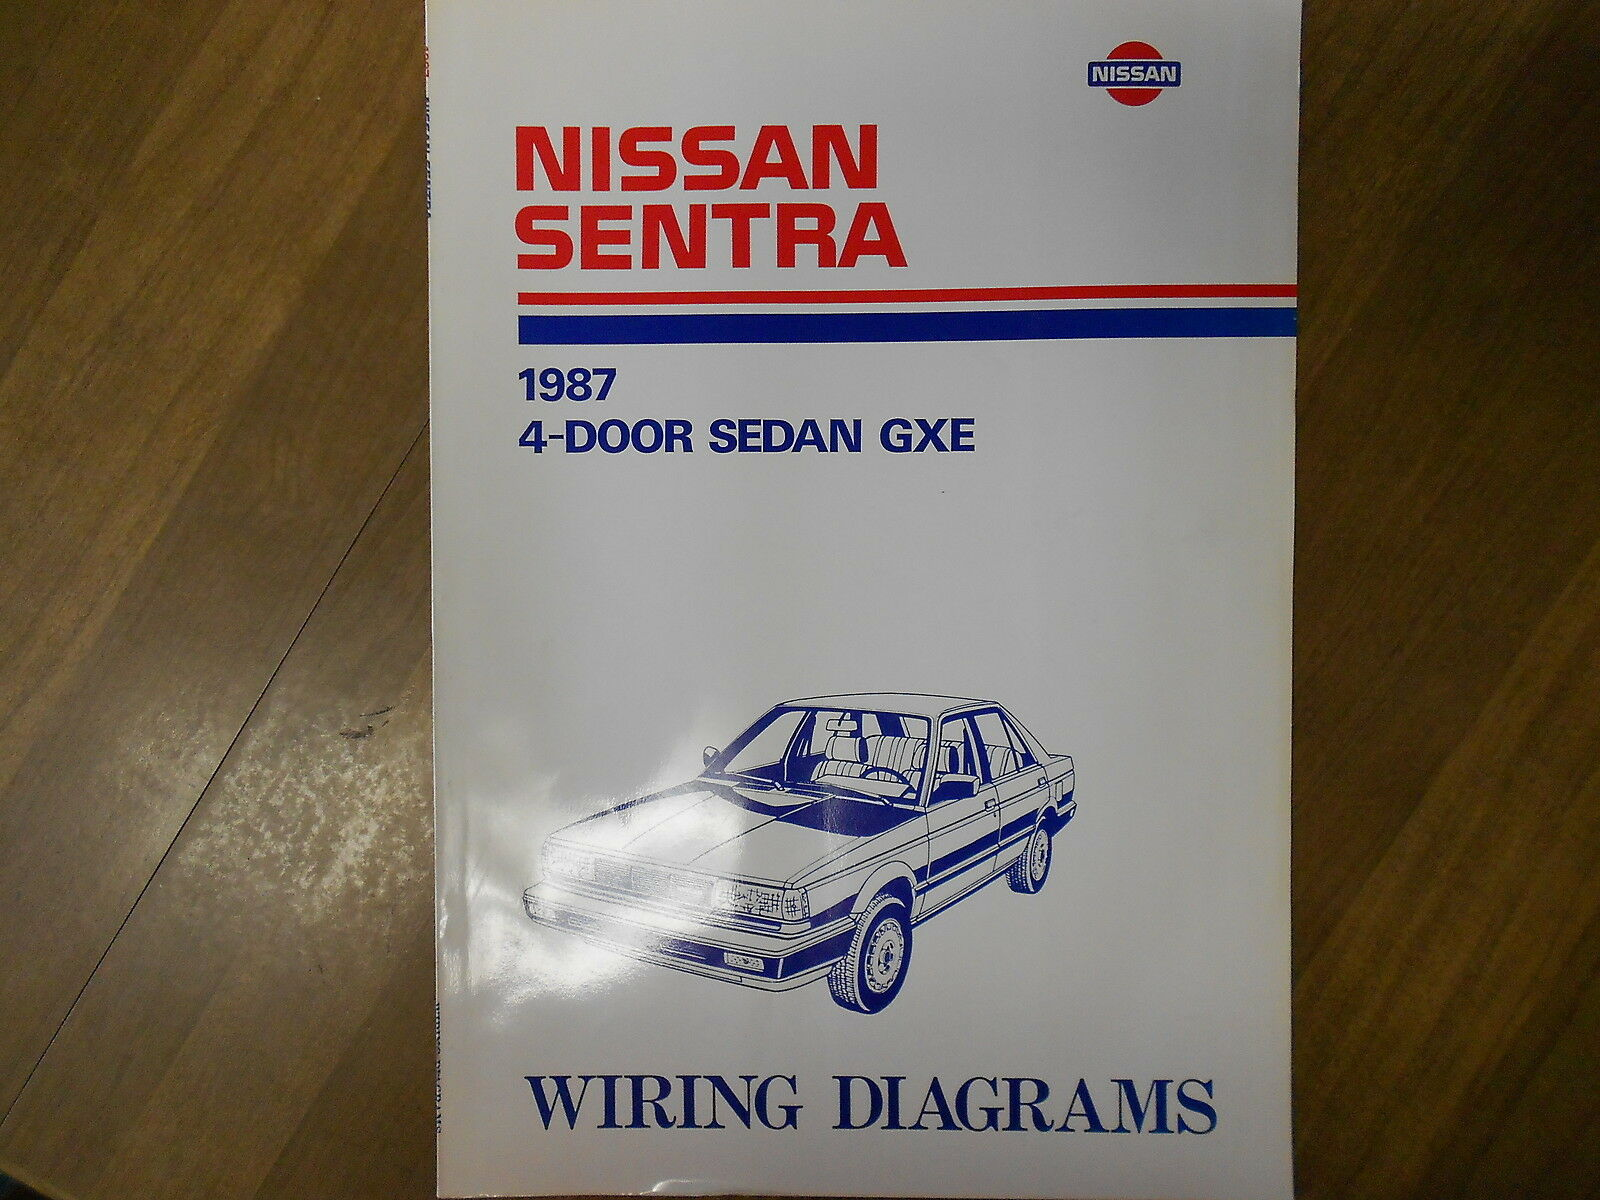 Sentra Service Manual Ata 110 Wiring Diagram B Walkthrough Array 1987 Nissan 4 Door Sedan Gxe Rh Picclick Com